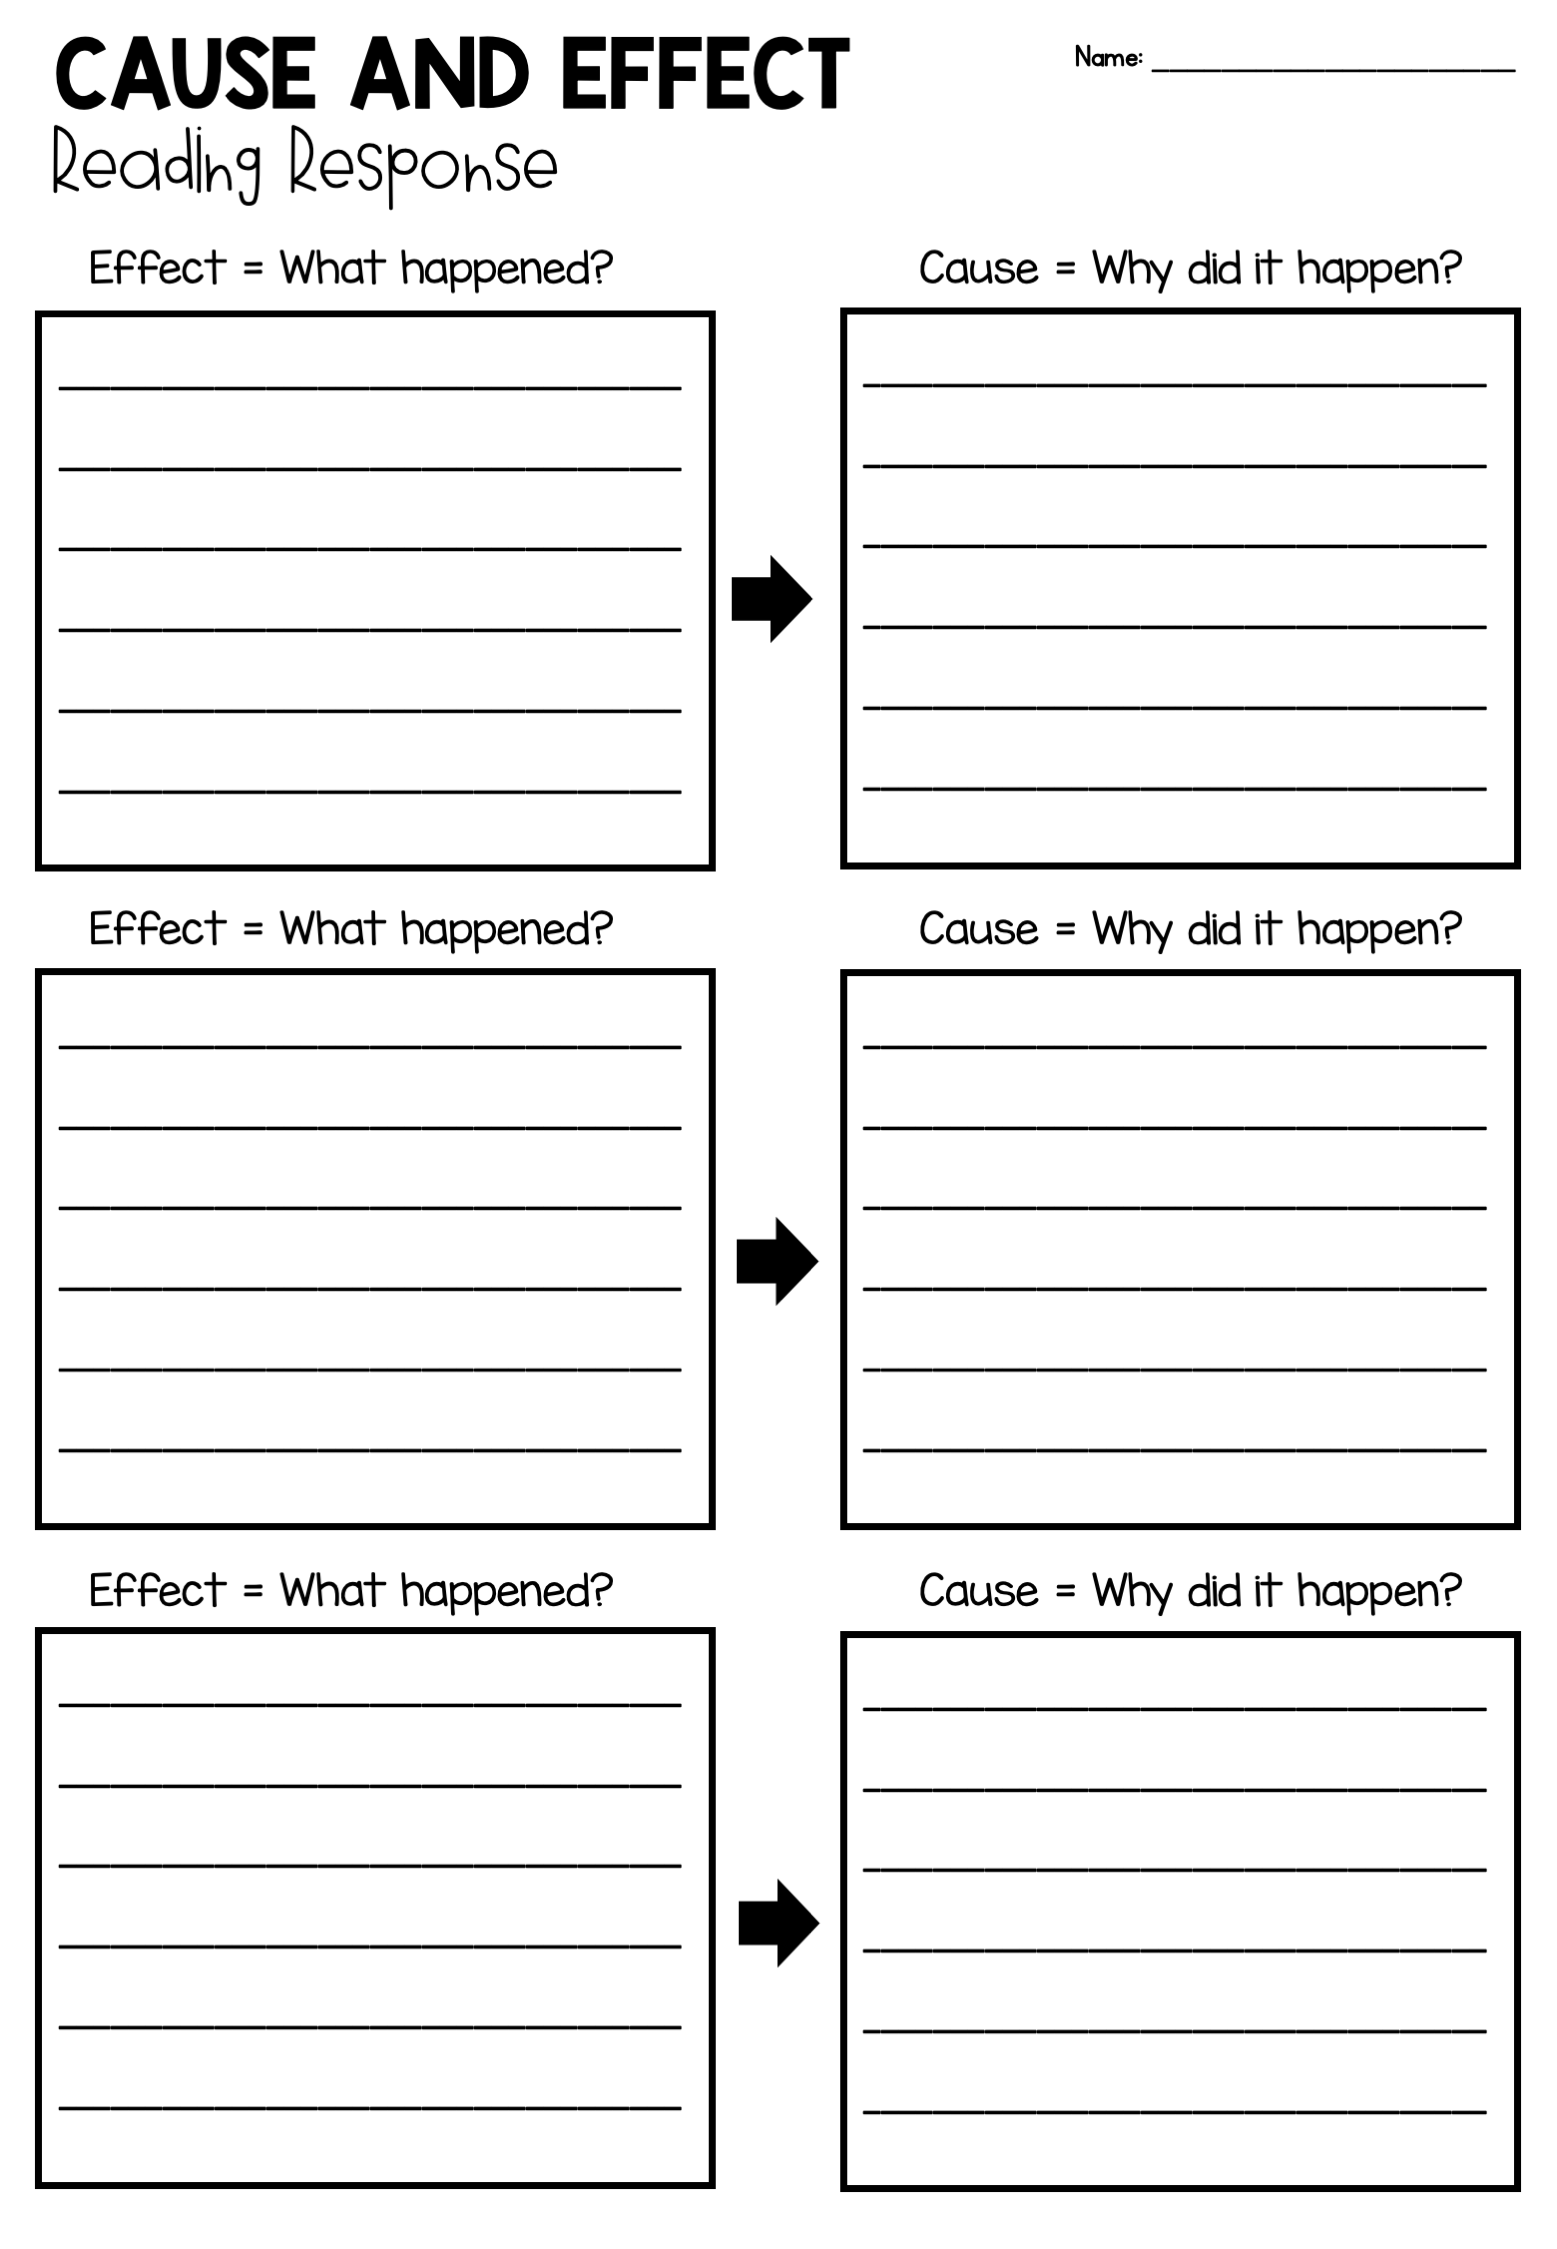 Cause And Effect Free Reading Response Template For Any Book Reading Response Cause And Effect Reading Comprehension Resources [ 2249 x 1557 Pixel ]